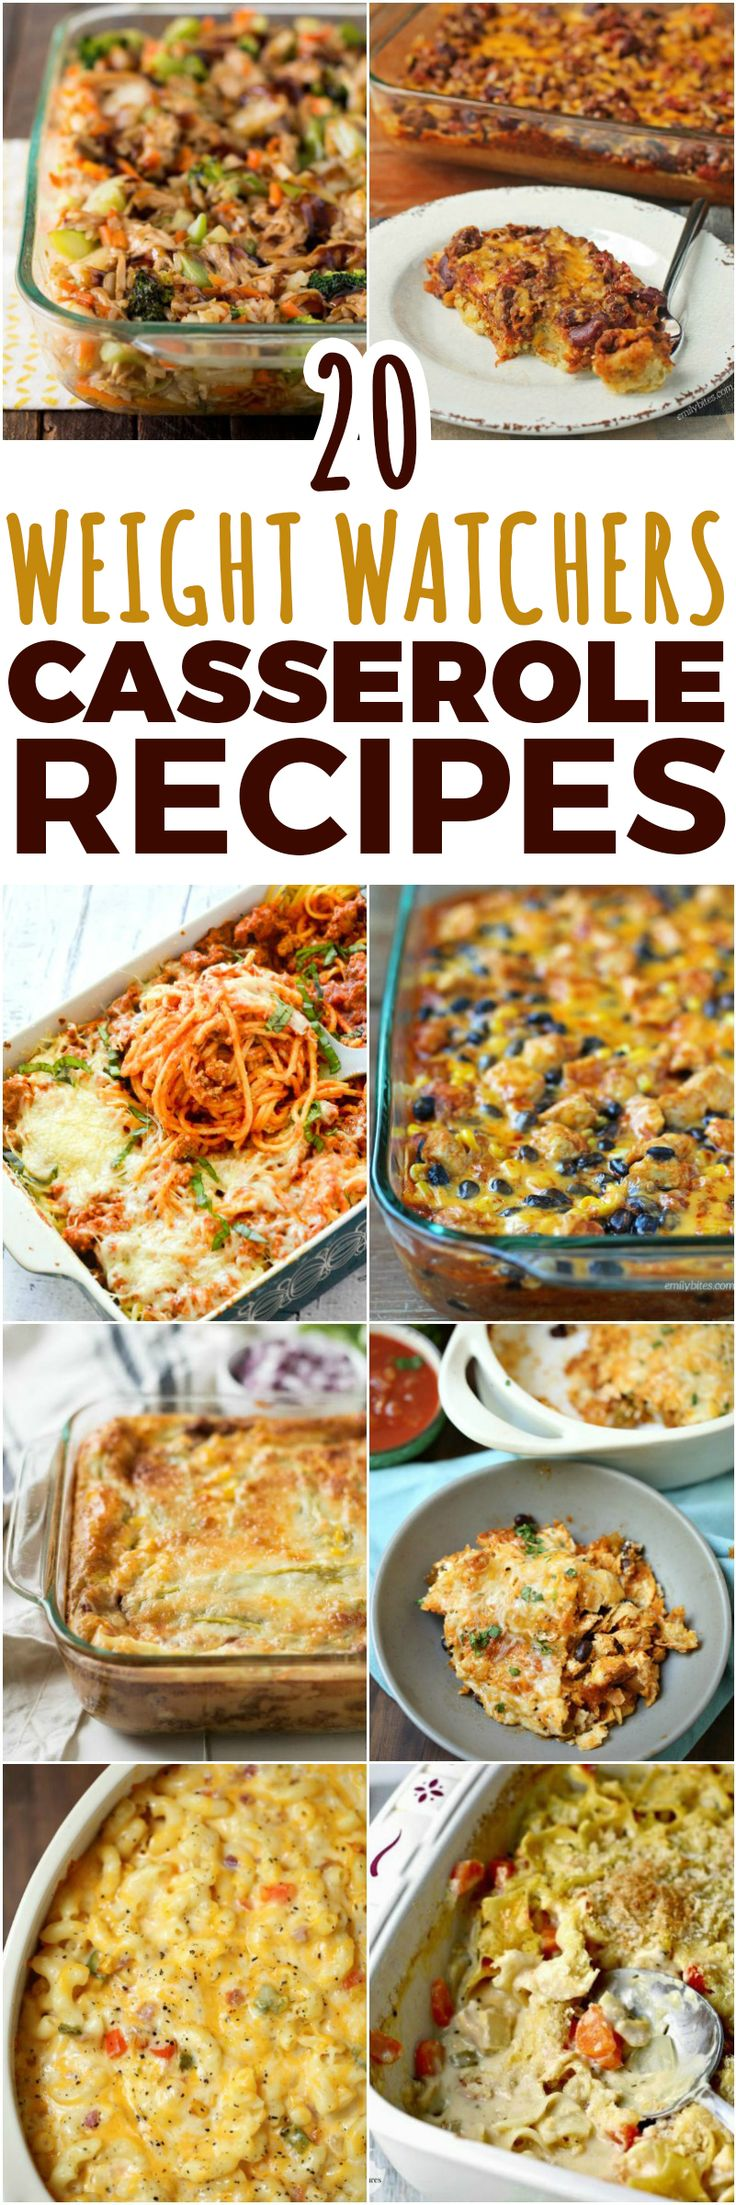 20 WEIGHT WATCHERS CASSEROLE RECIPES (SmartPoints)